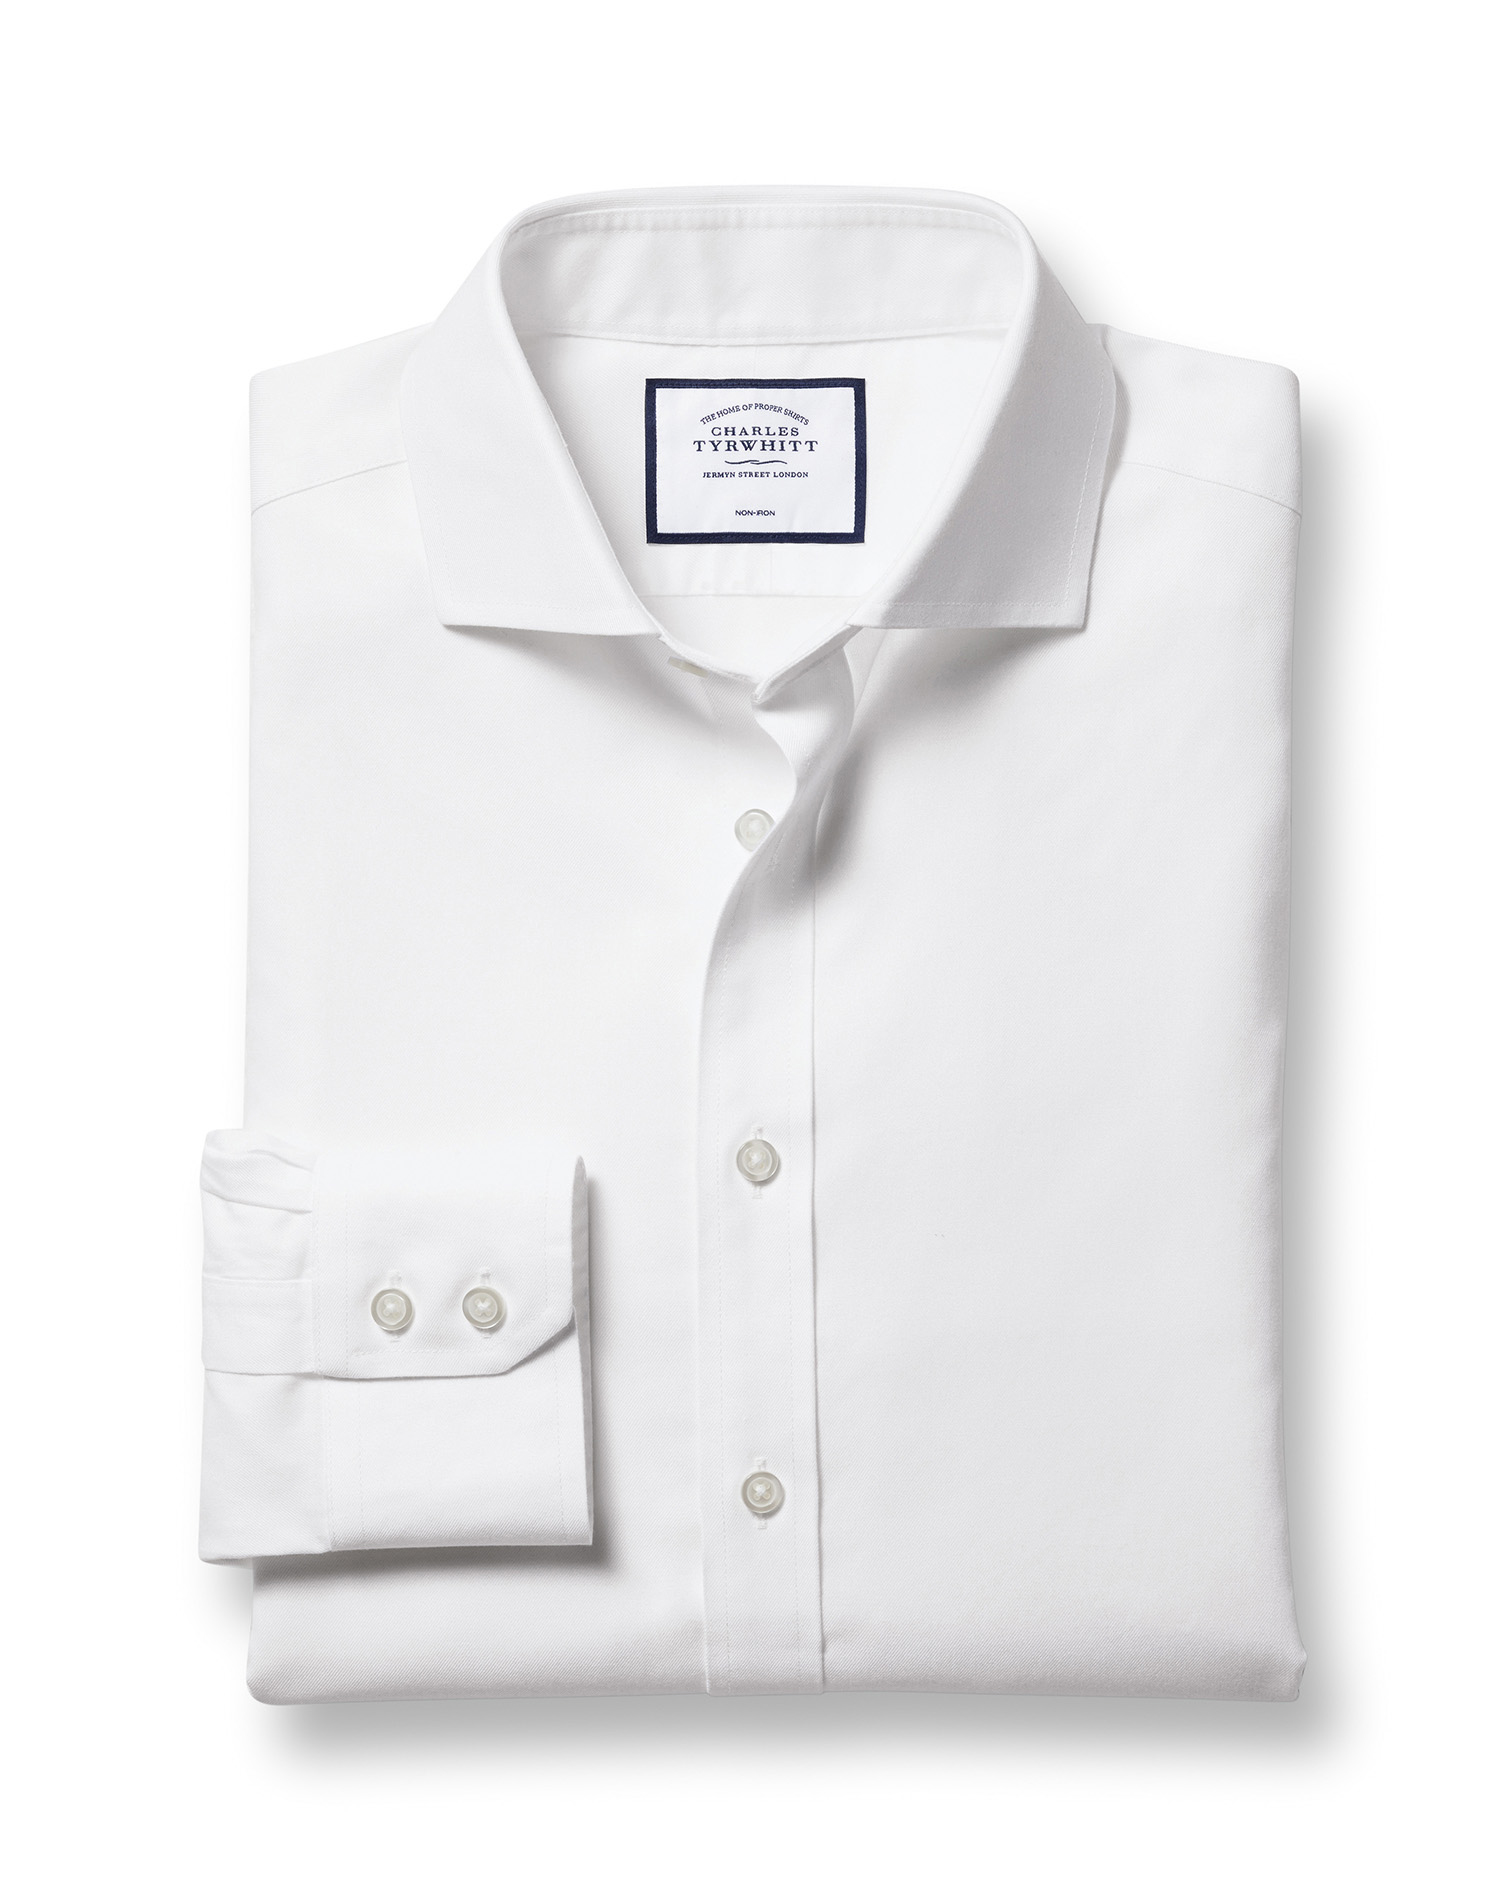 Slim Fit Cutaway Non-Iron Twill White Cotton Formal Shirt by Charles Tyrwhitt